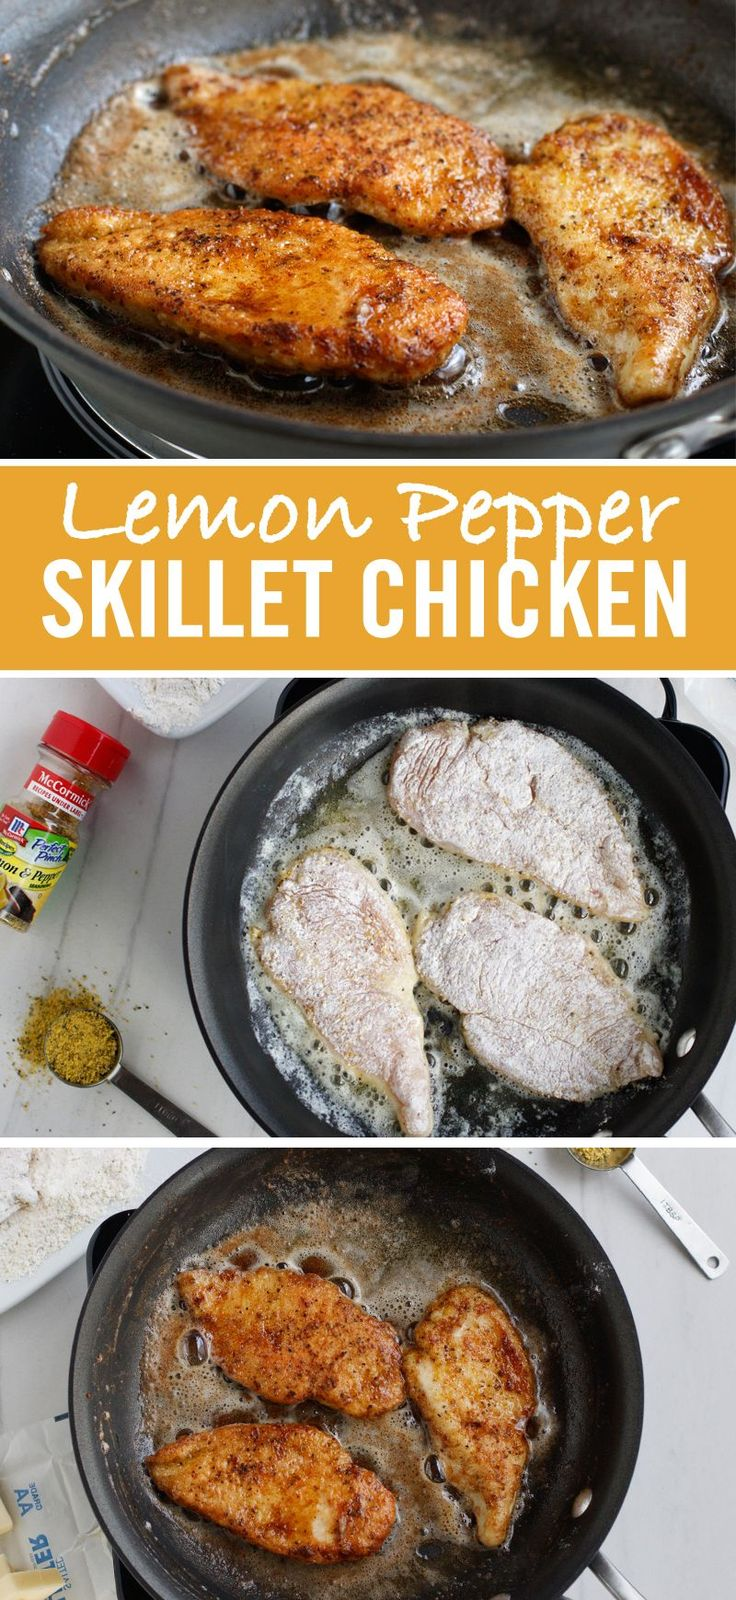 Busy weeknight? We've got you covered with this four-ingredient Lemon Pepper one-pan chicken recipe.